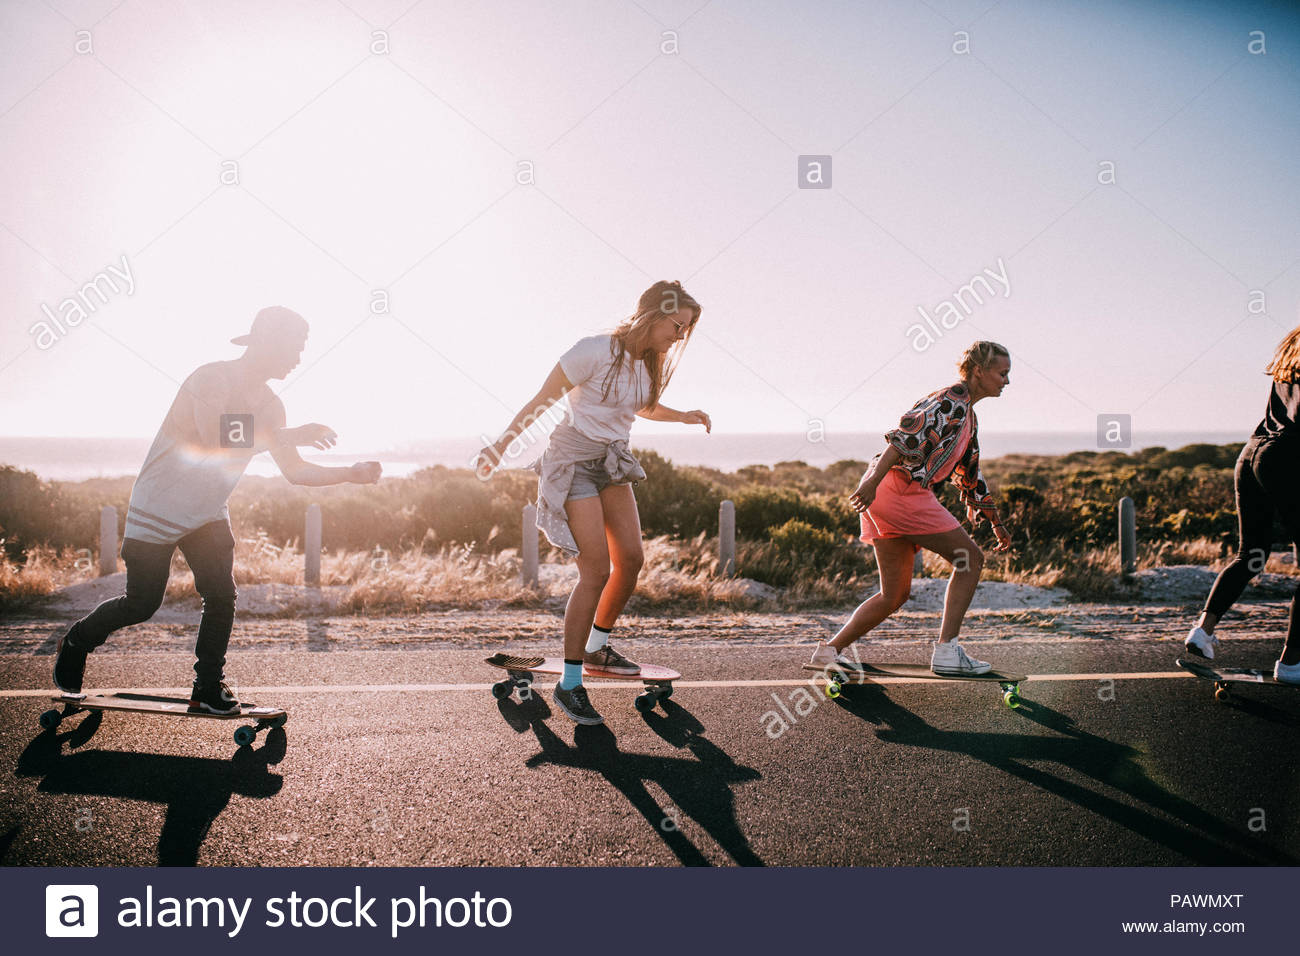 Group of young adult friends cheering and riding longboards - Stock Image